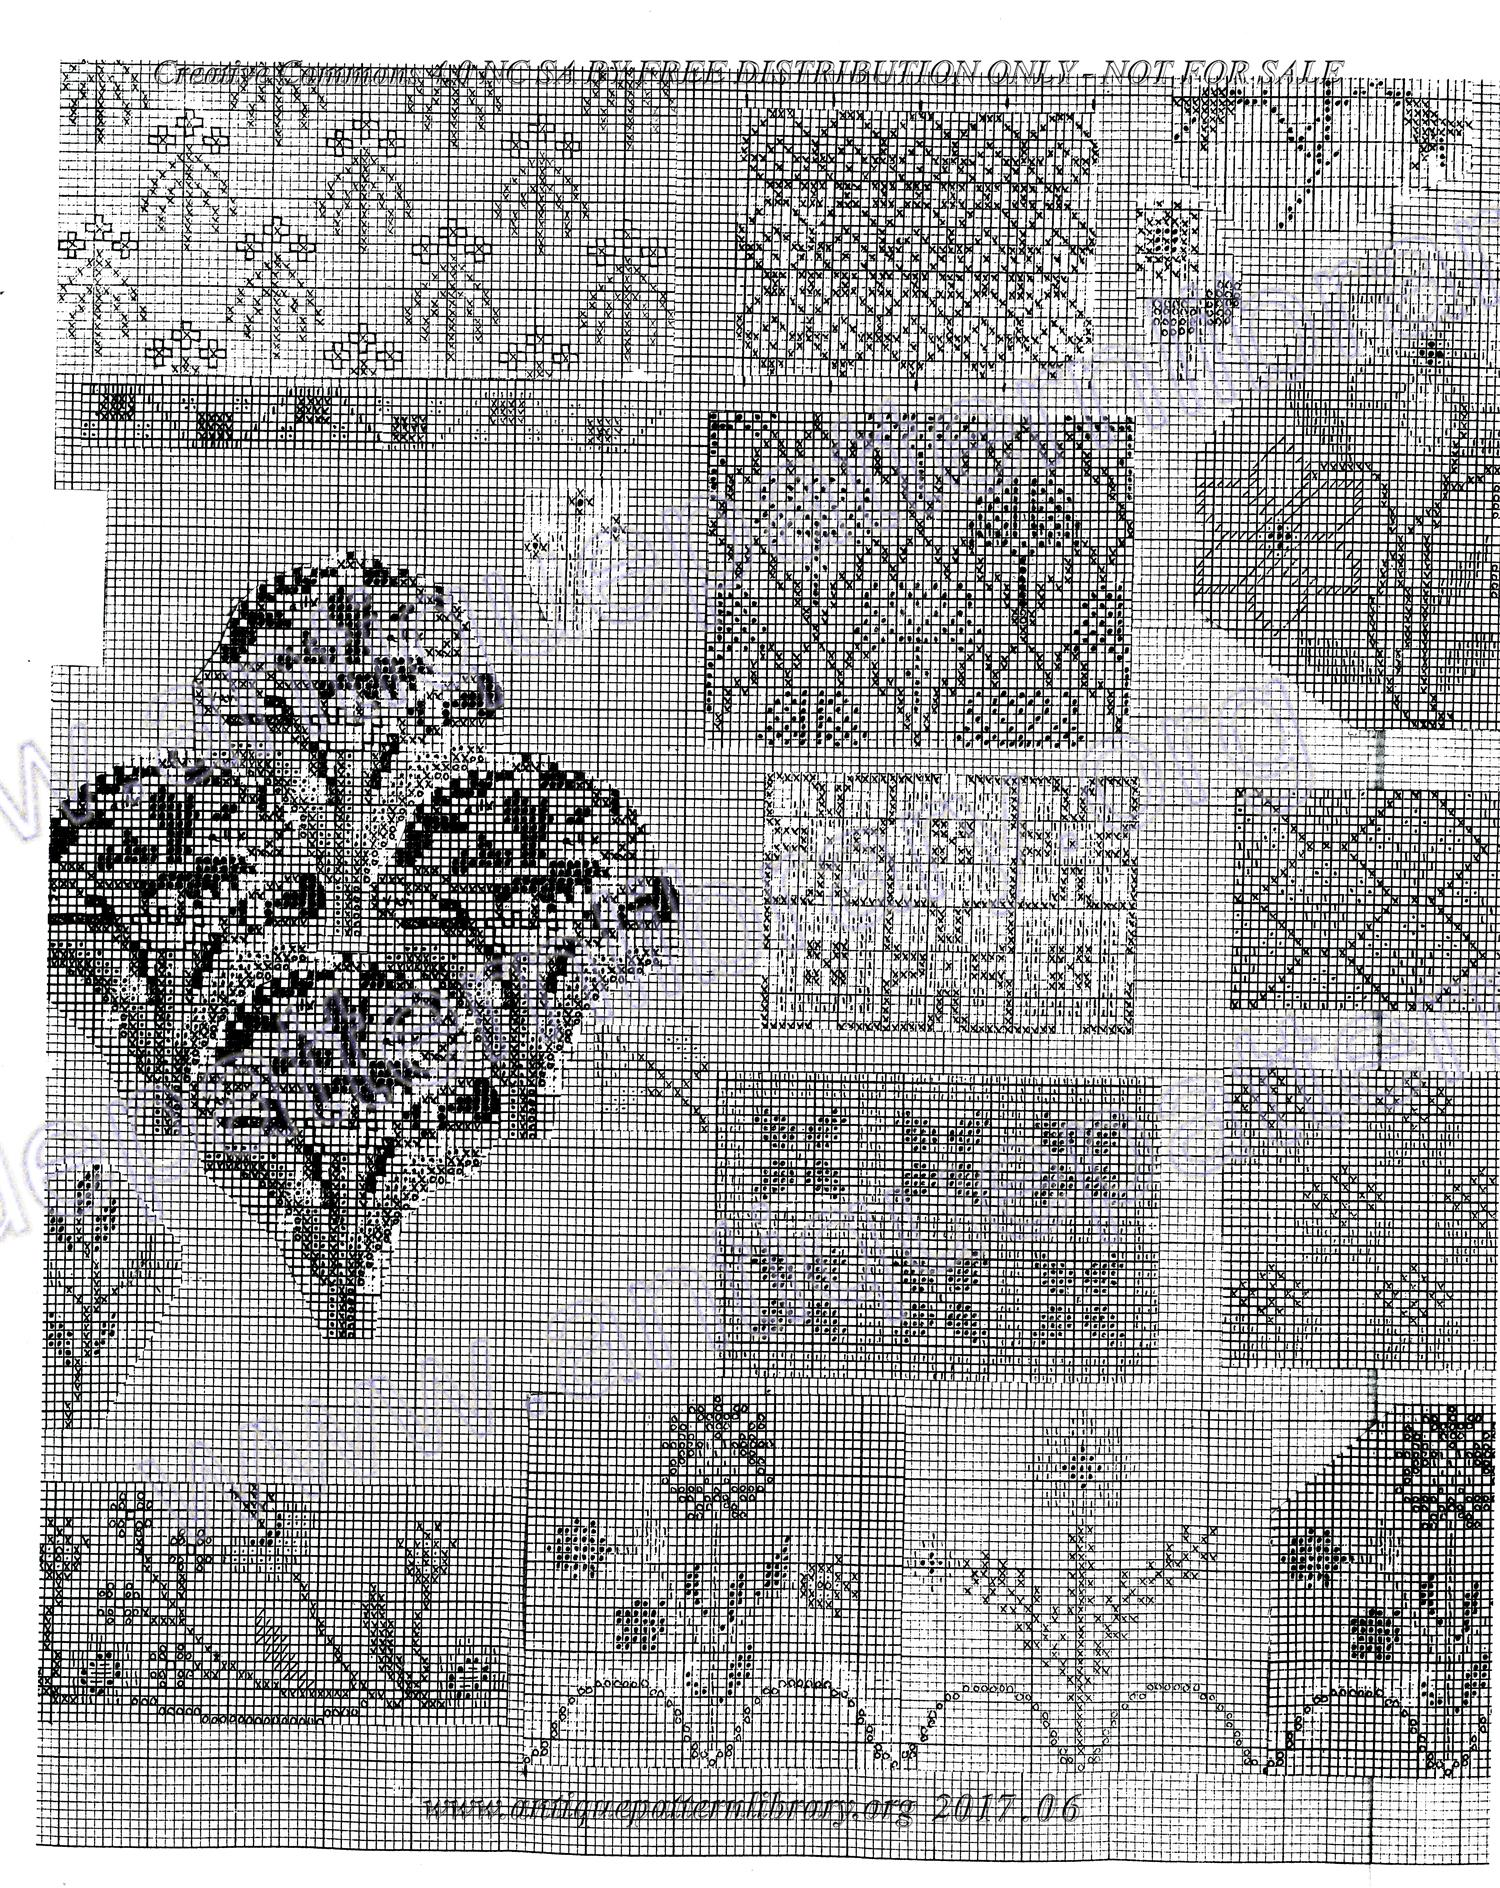 D-CK002 German motifs sampler